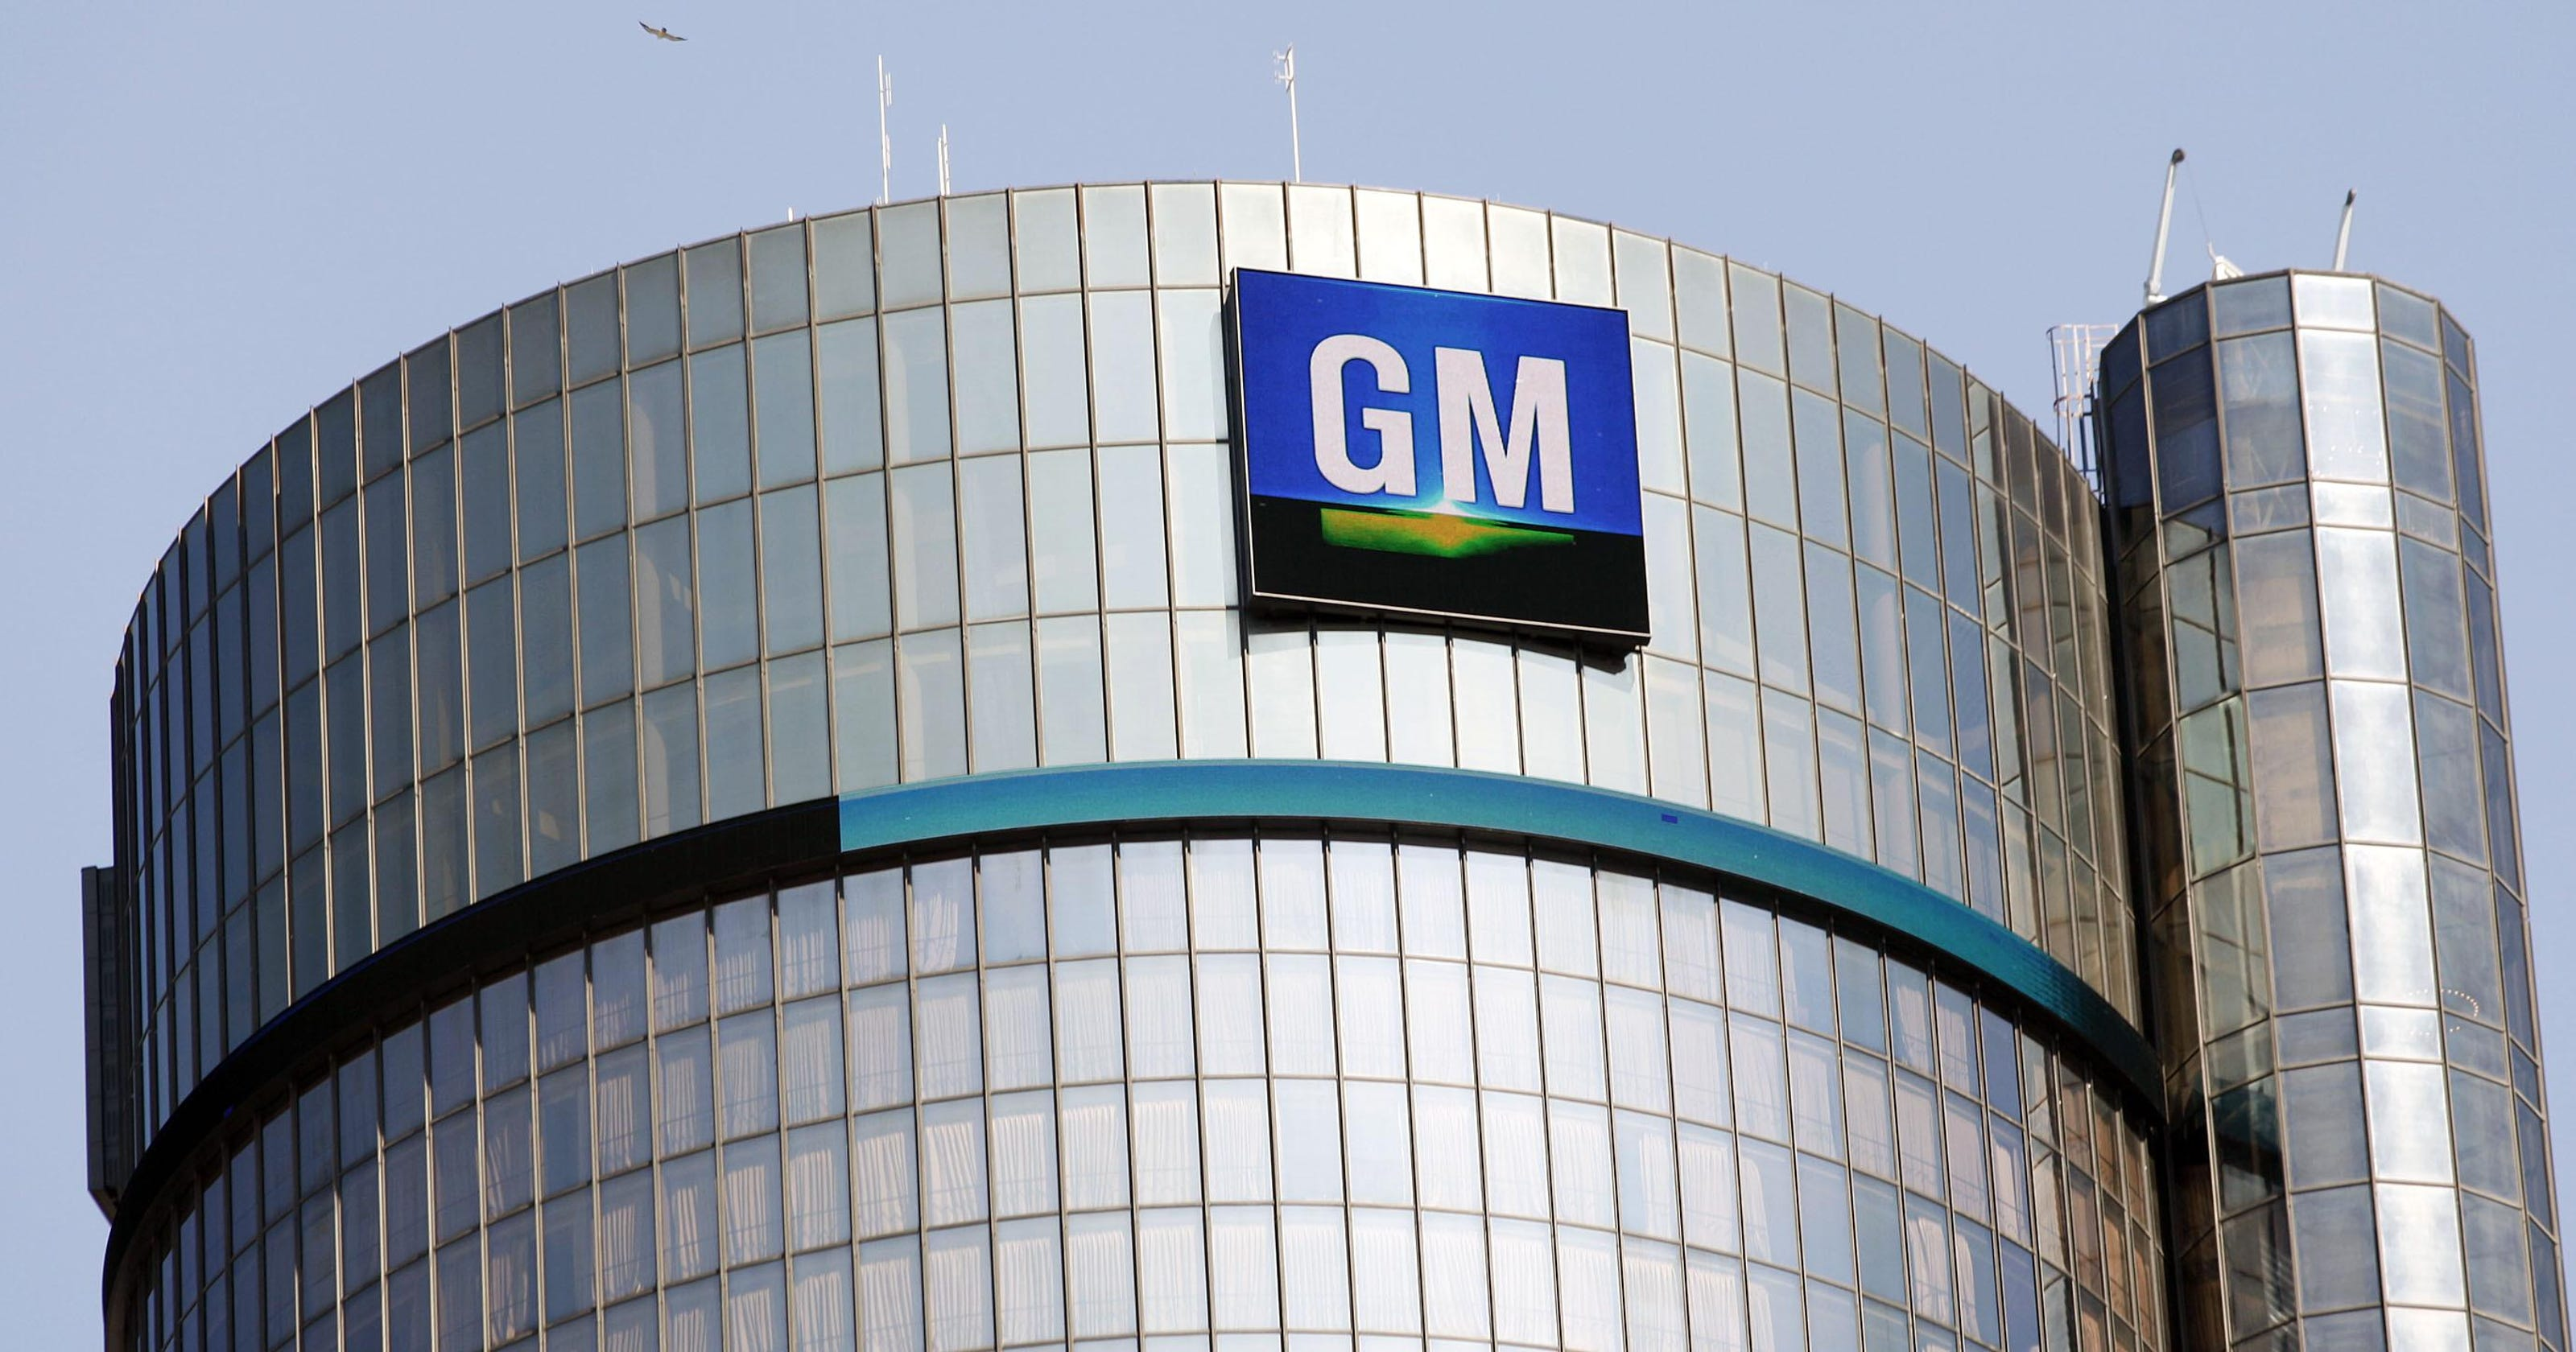 GM culture could be tested in buyouts